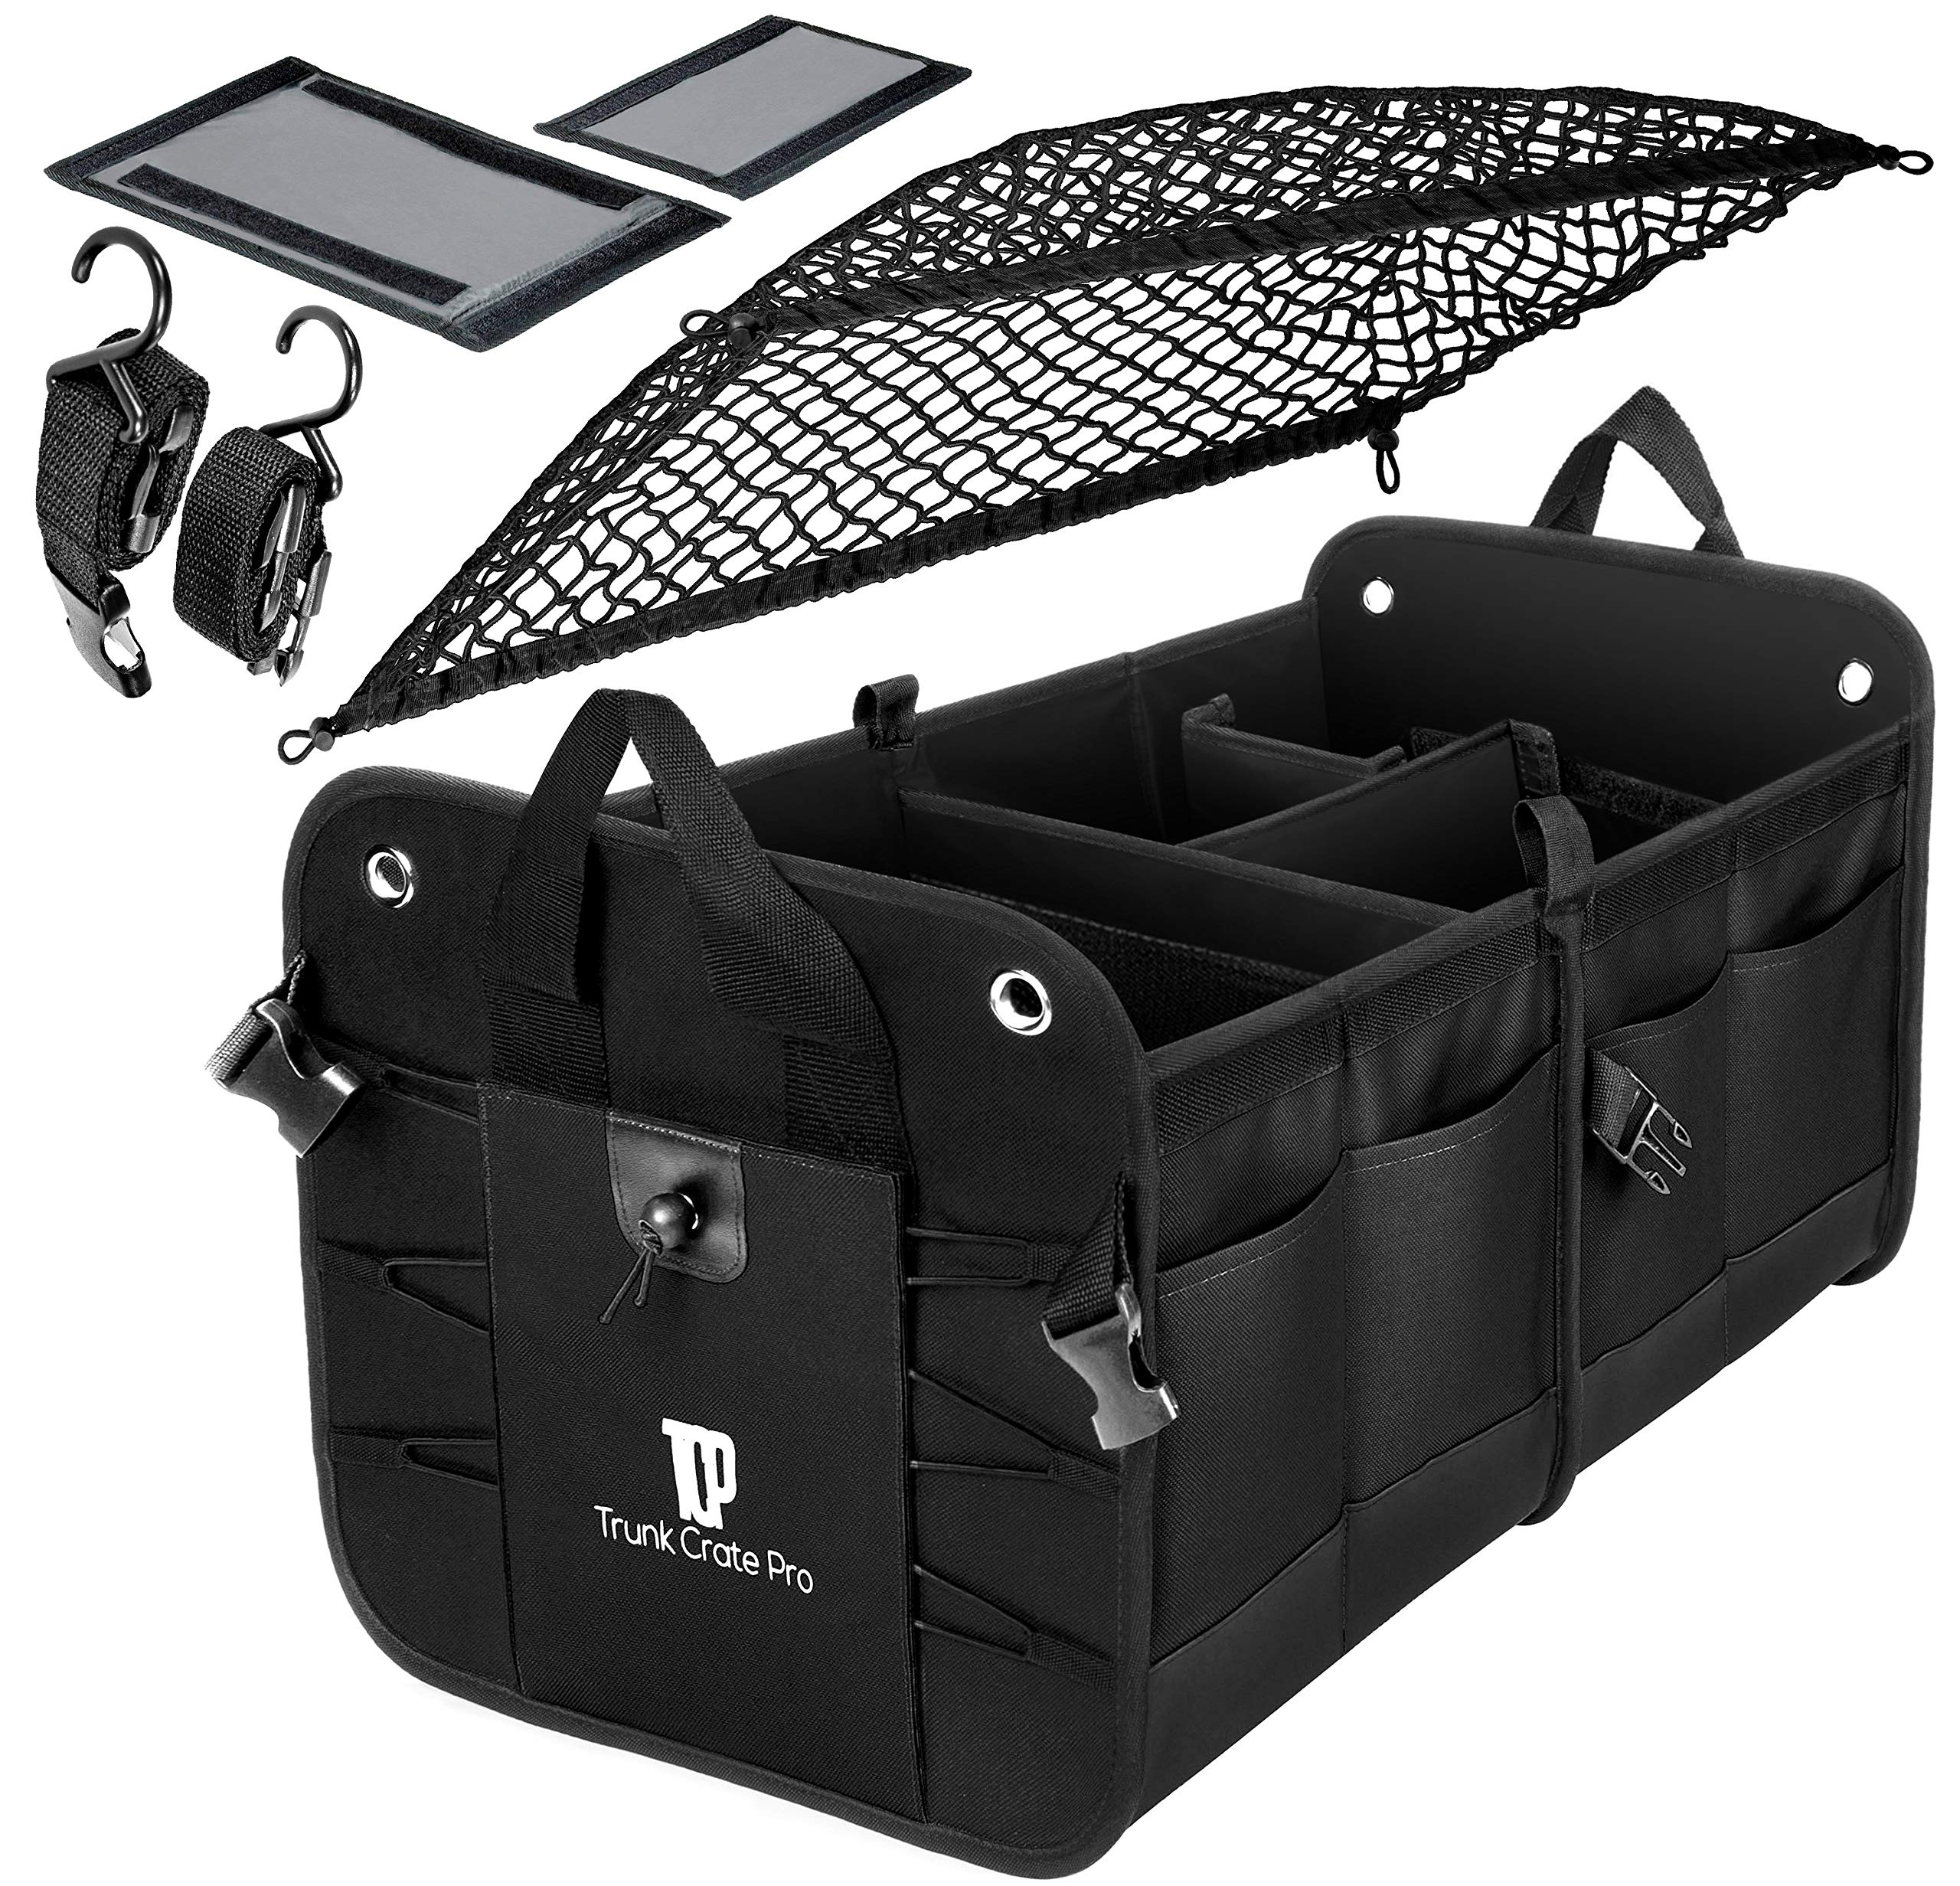 TRUNKCRATEPRO Premium Multi Compartments Collapsible Portable Trunk Organizer for Auto, SUV, Truck, Minivan with Black Cover Net by TRUNKCRATEPRO